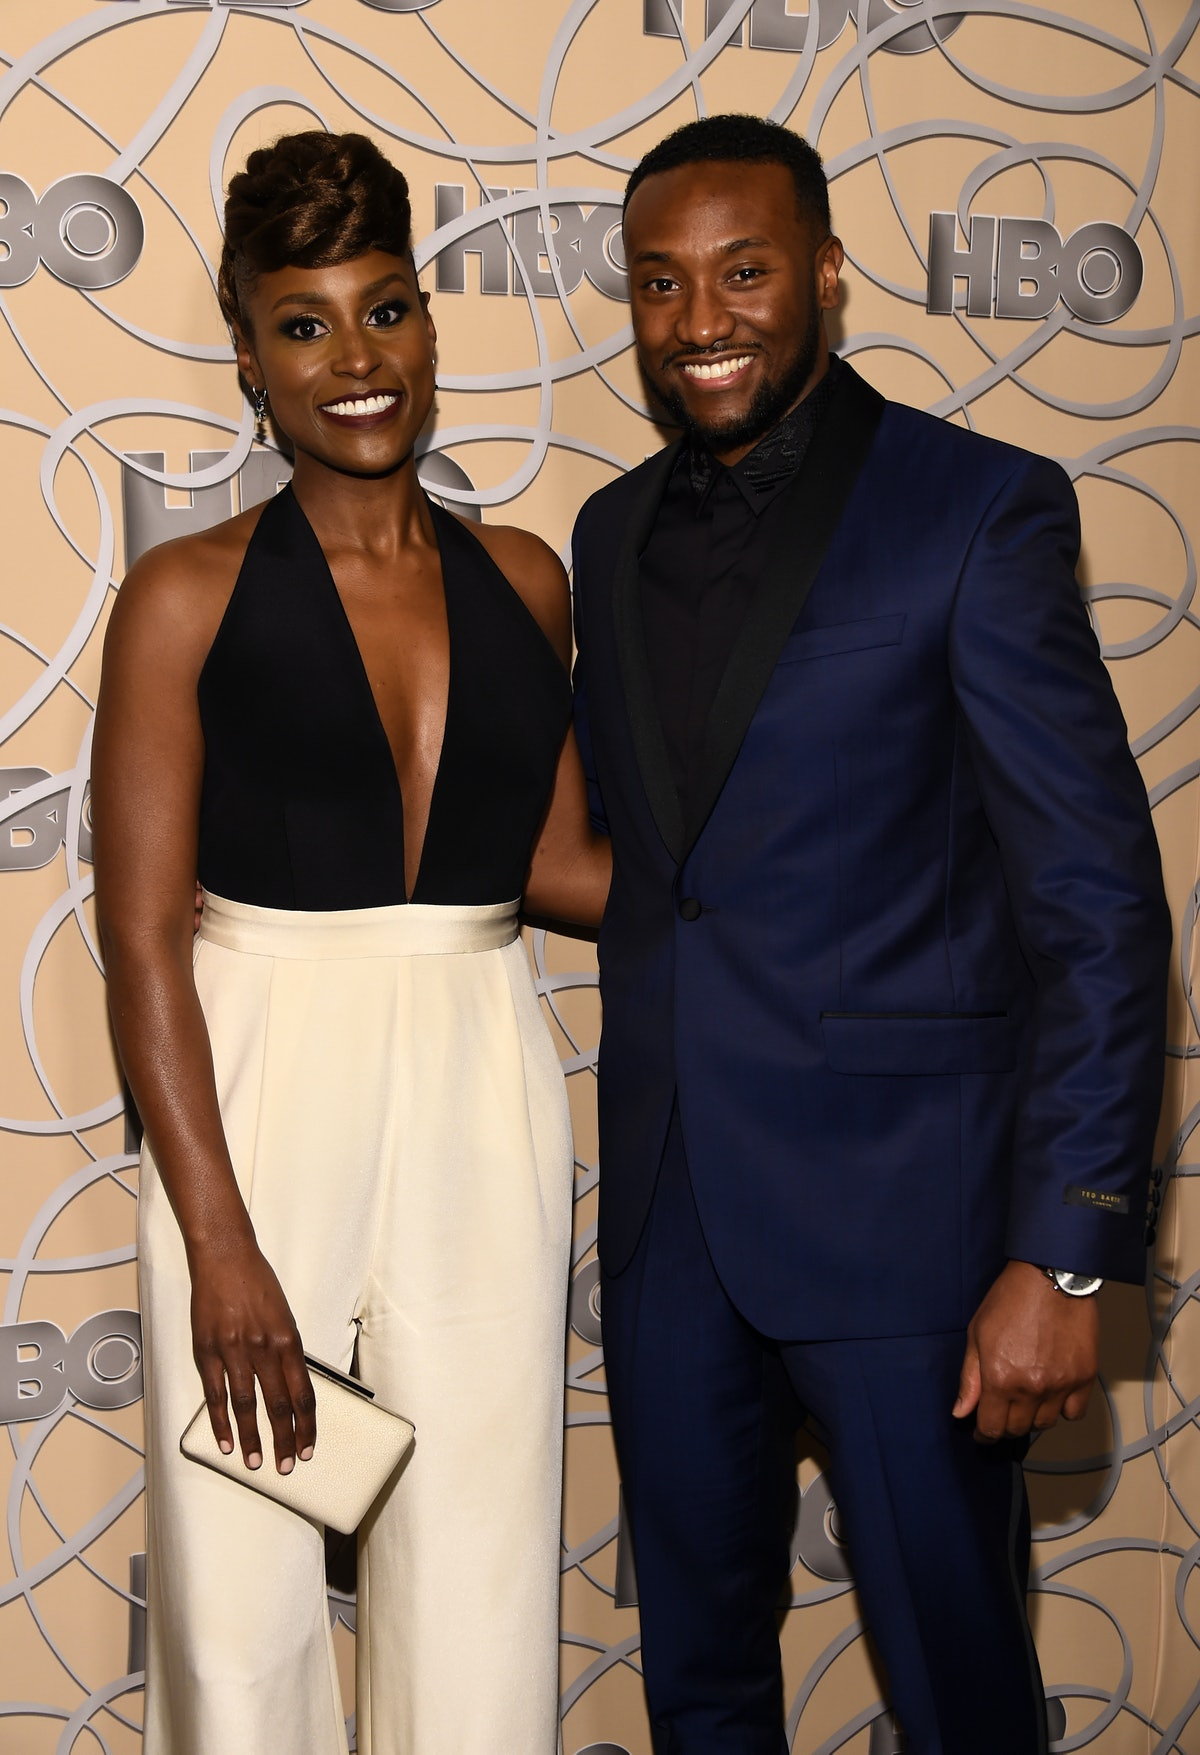 Issa Rae and Louis Diame's relationship history is pretty private.